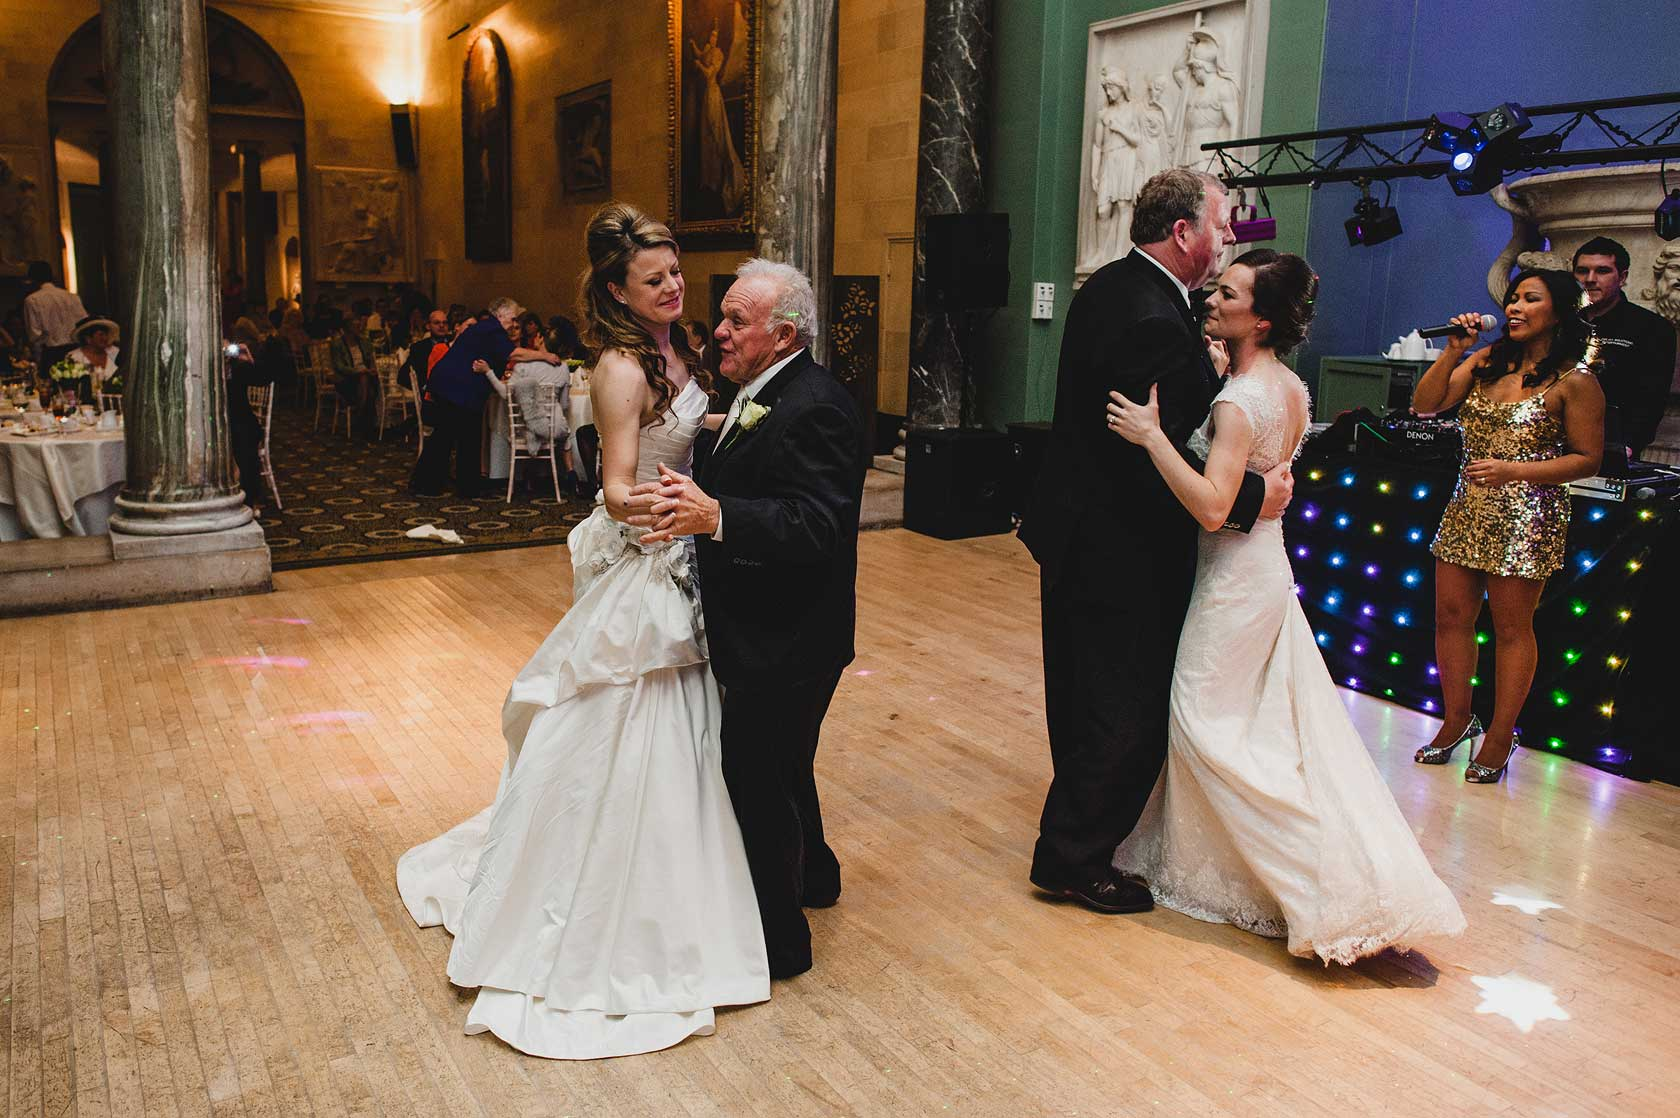 Wedding Photographer in Bedfordshire